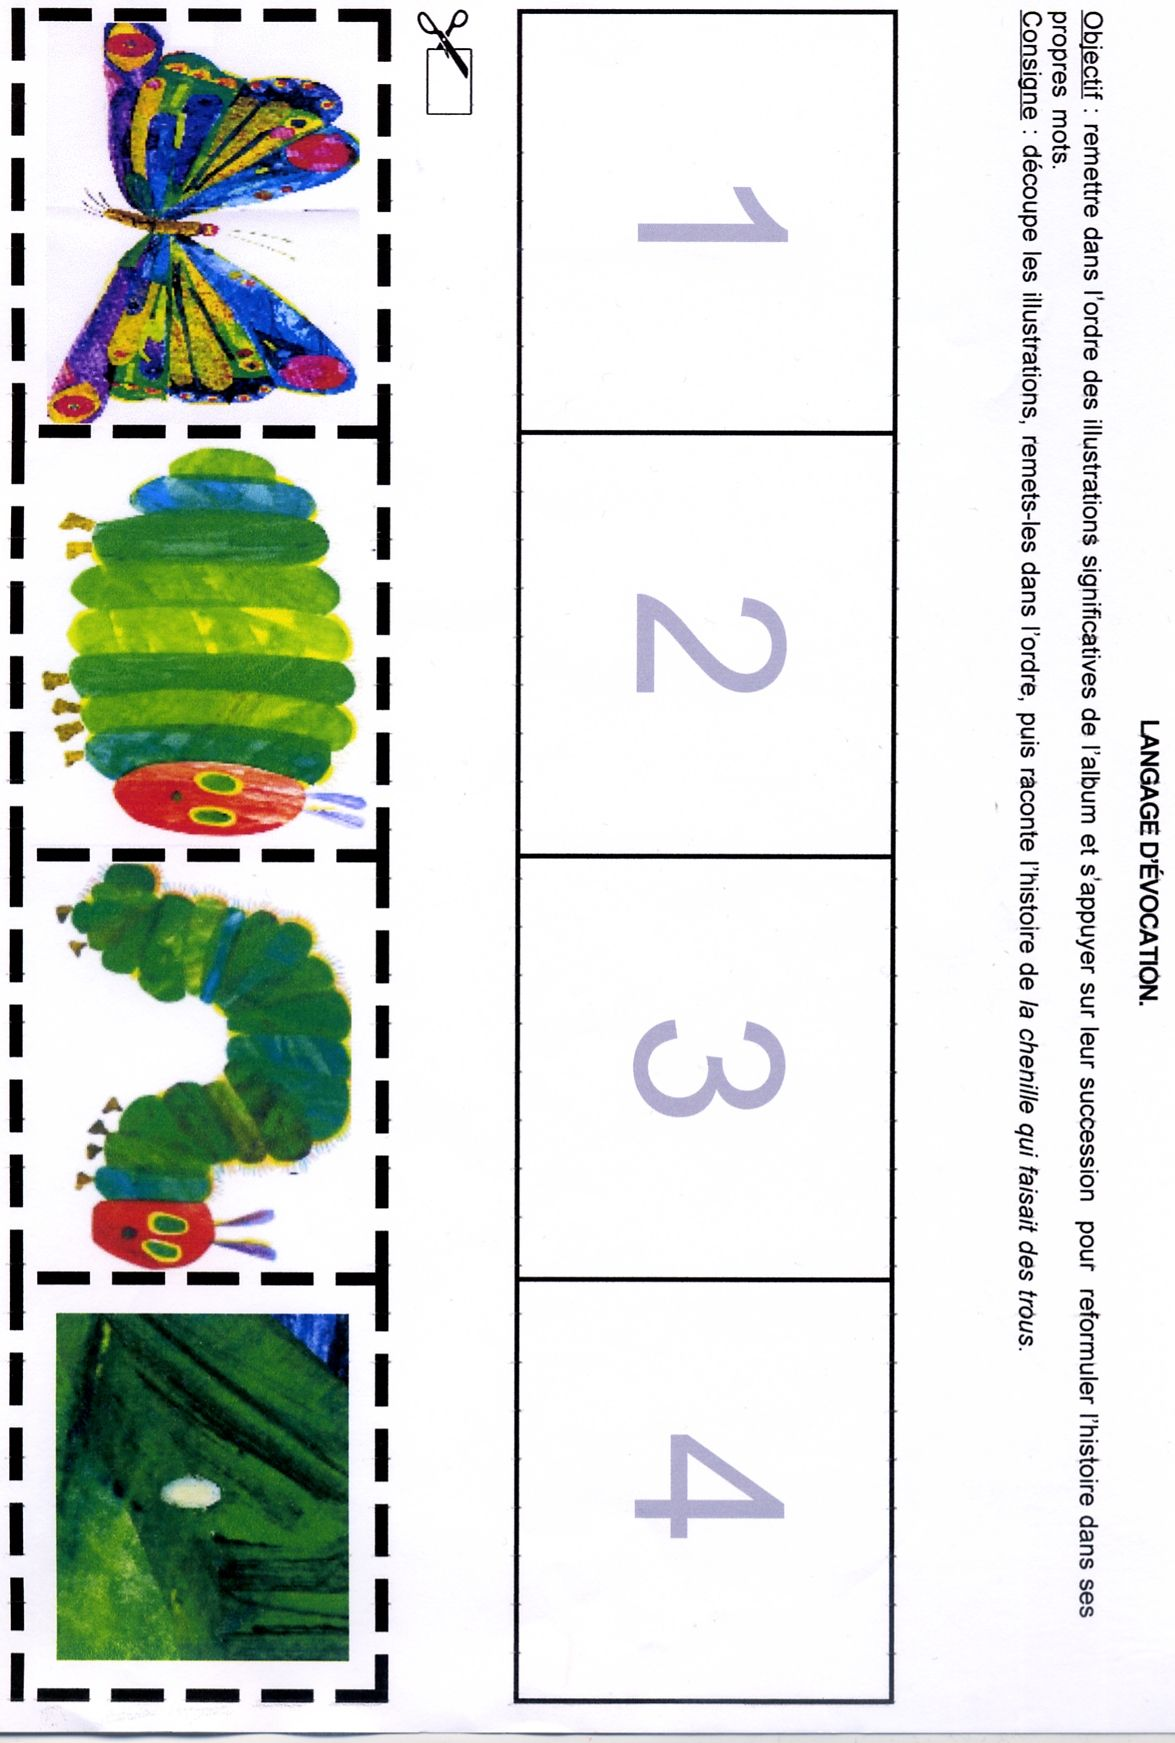 The very hungry caterpillar stages of life hands-on activity ...